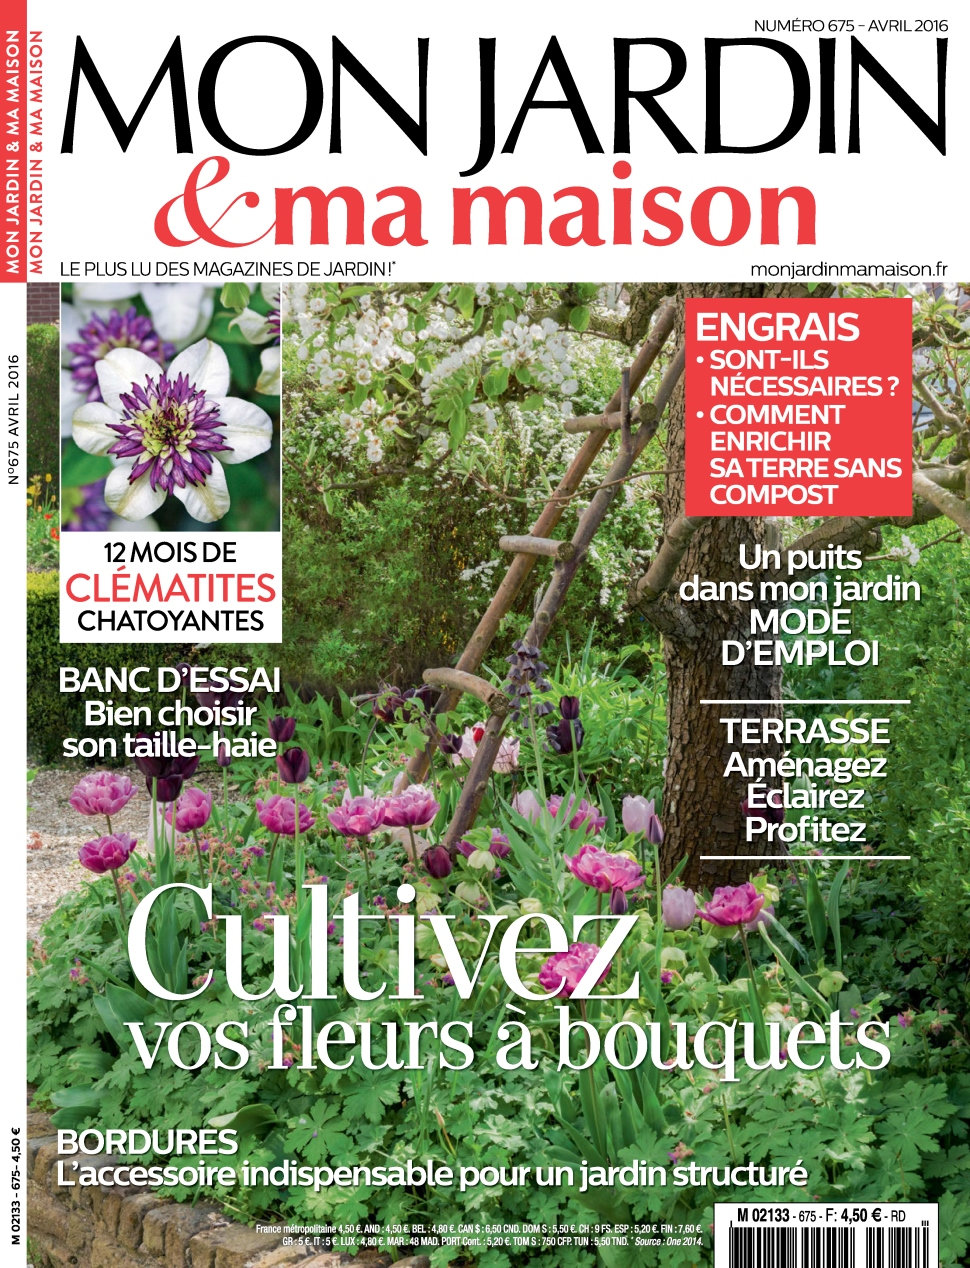 mon jardin ma maison n 675 avril 2016 telecharger livres bd comics mangas magazines. Black Bedroom Furniture Sets. Home Design Ideas